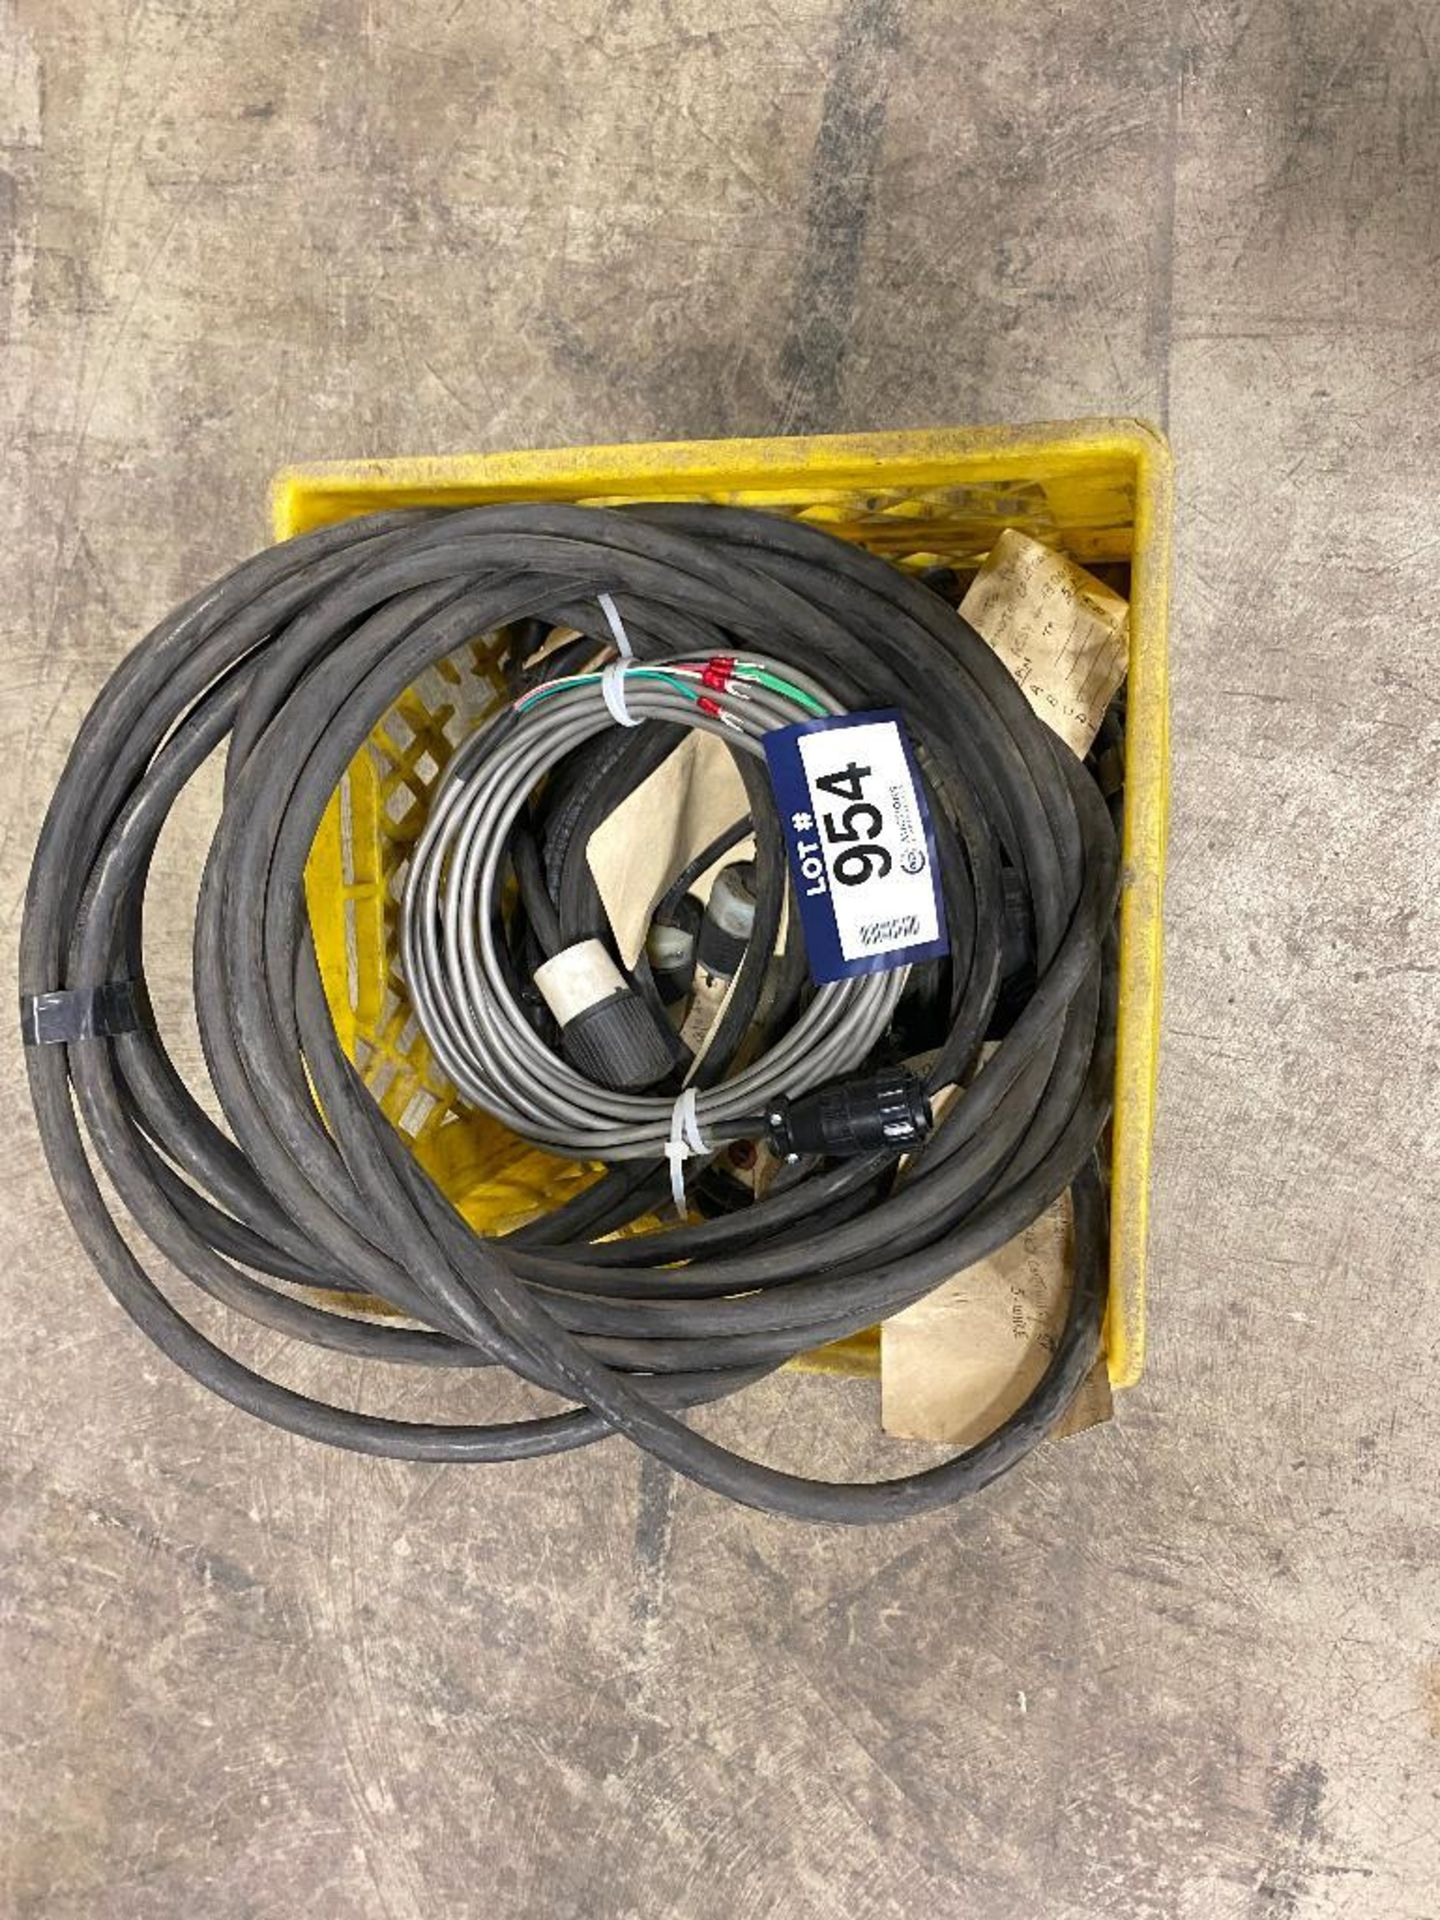 Crate of Asst. Miller Cables